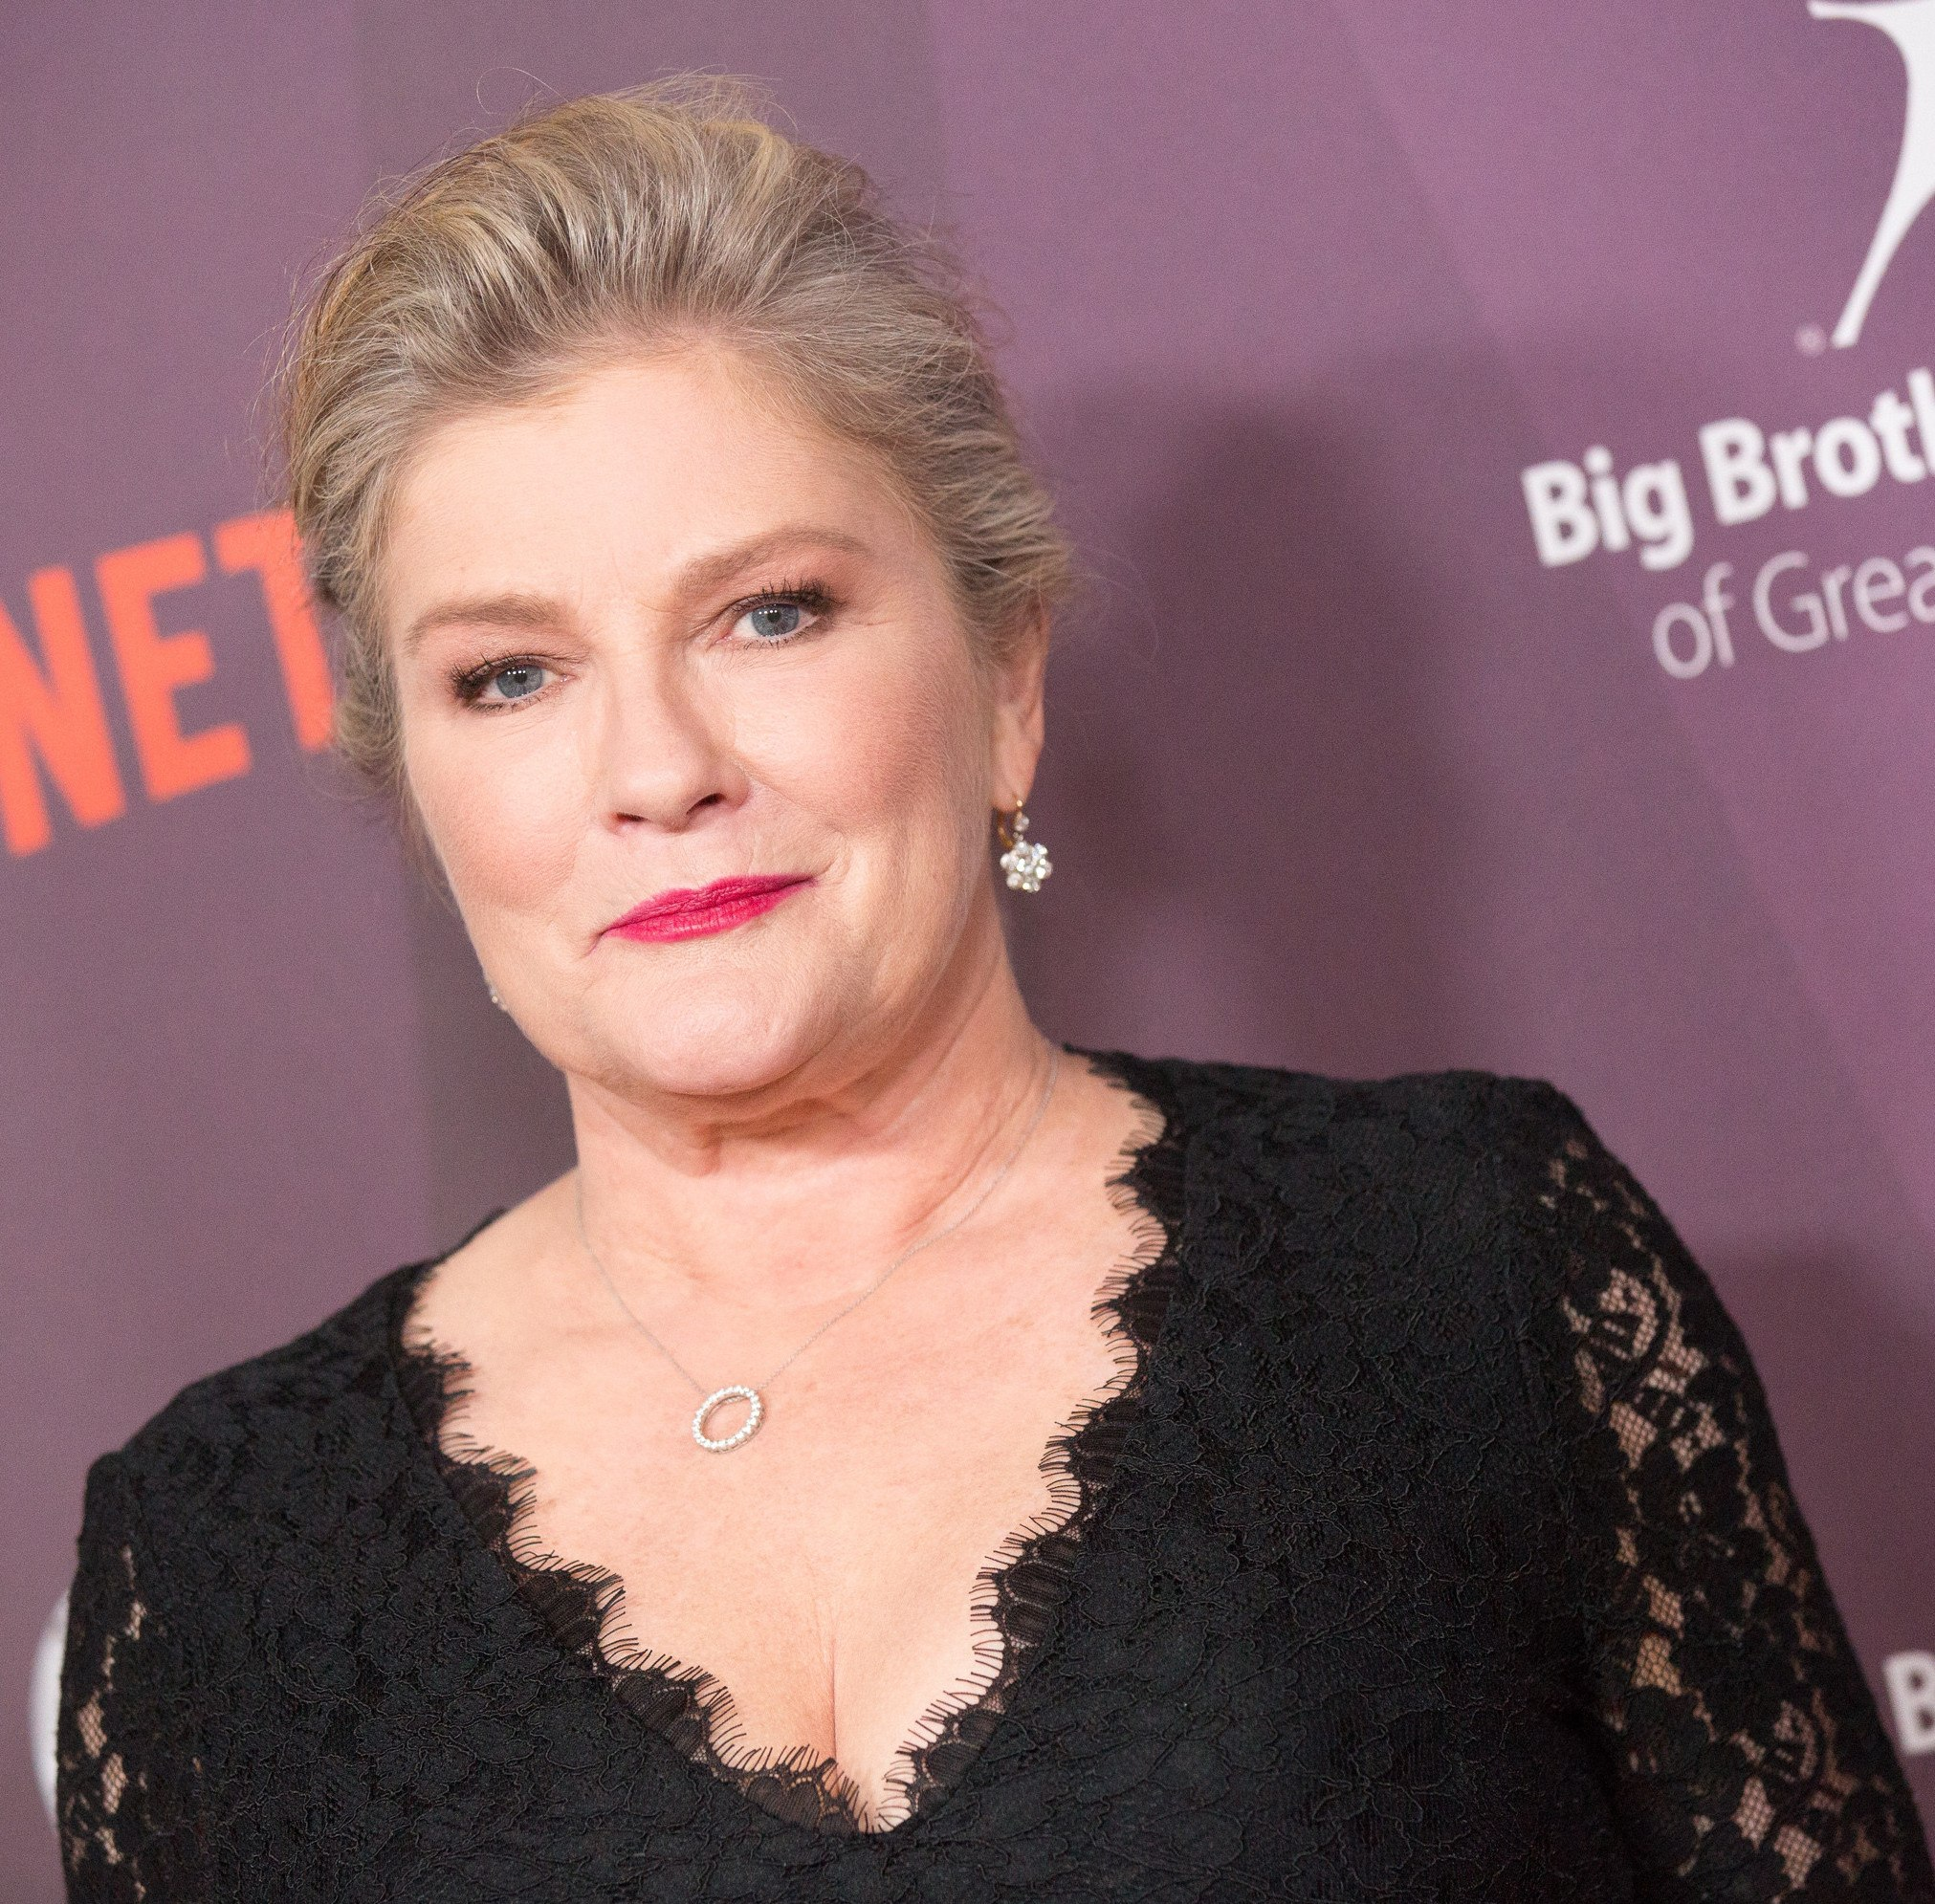 4 kate mulgrew Here's What The Orange Is The New Black Cast Looks Like In Real Life